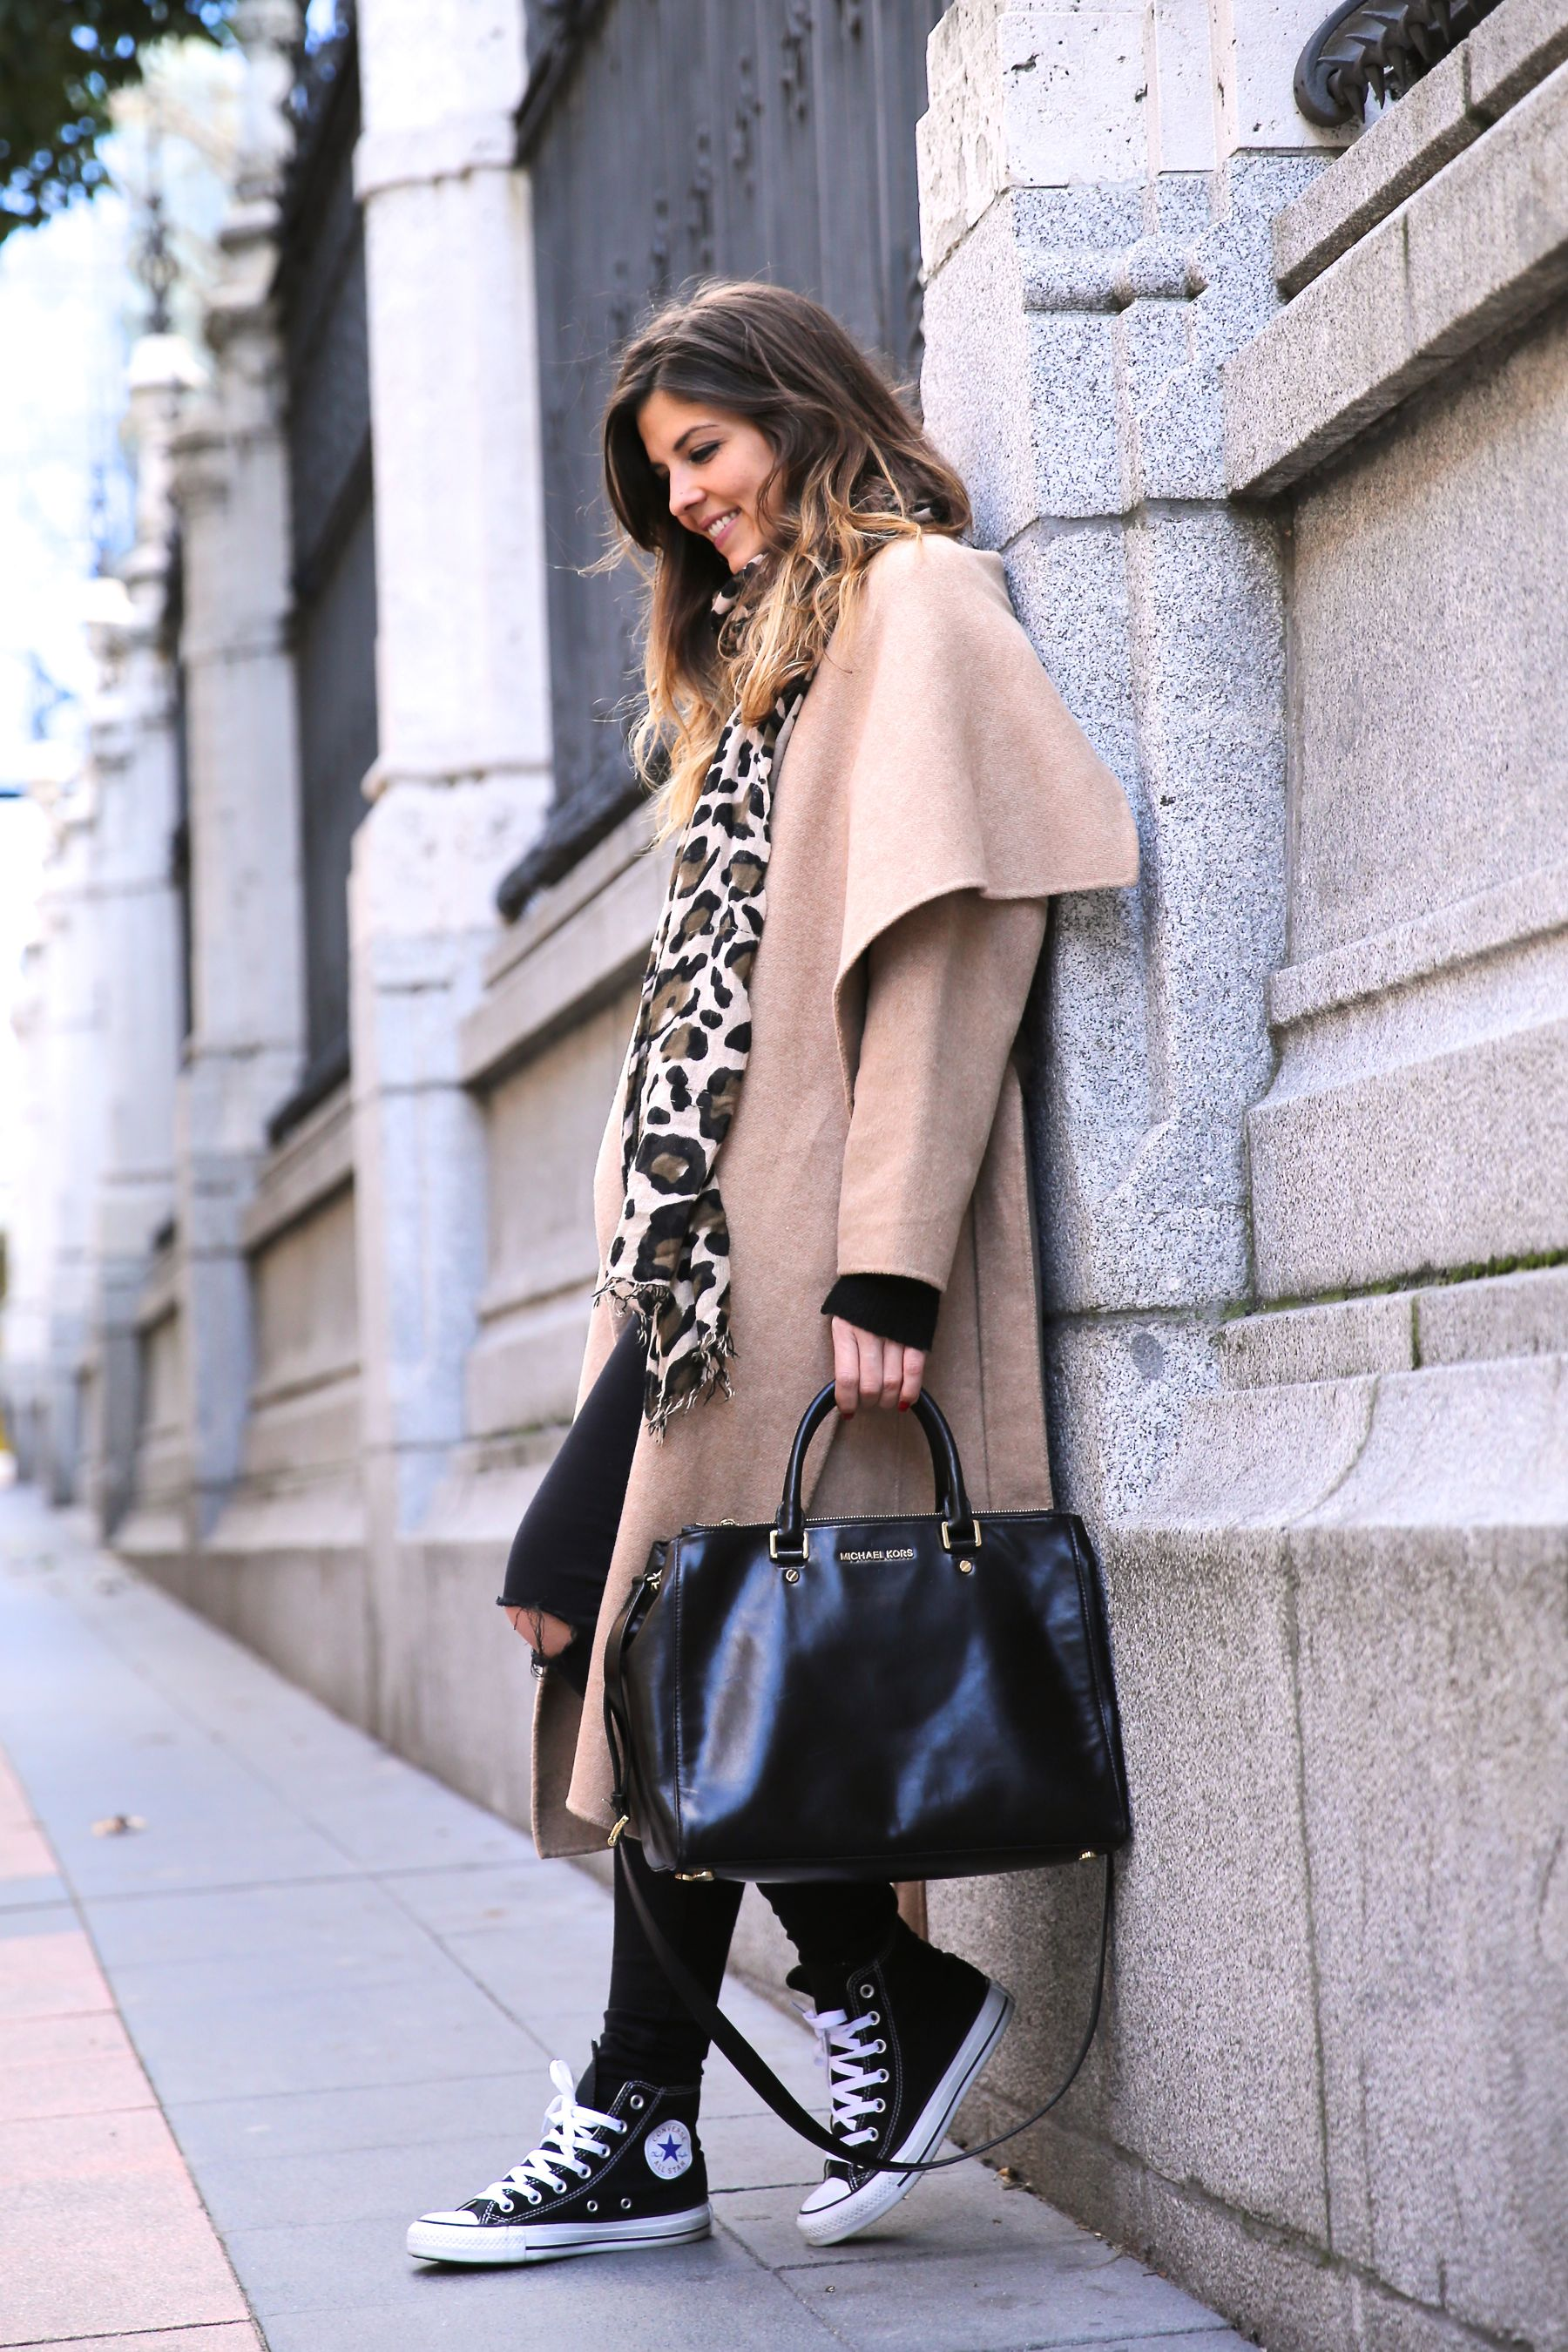 Natalia Cabezas is wearing a camel coat from Zara, black jeans from Asos, leopard print scarf, bag from Michael Kors and black Converse